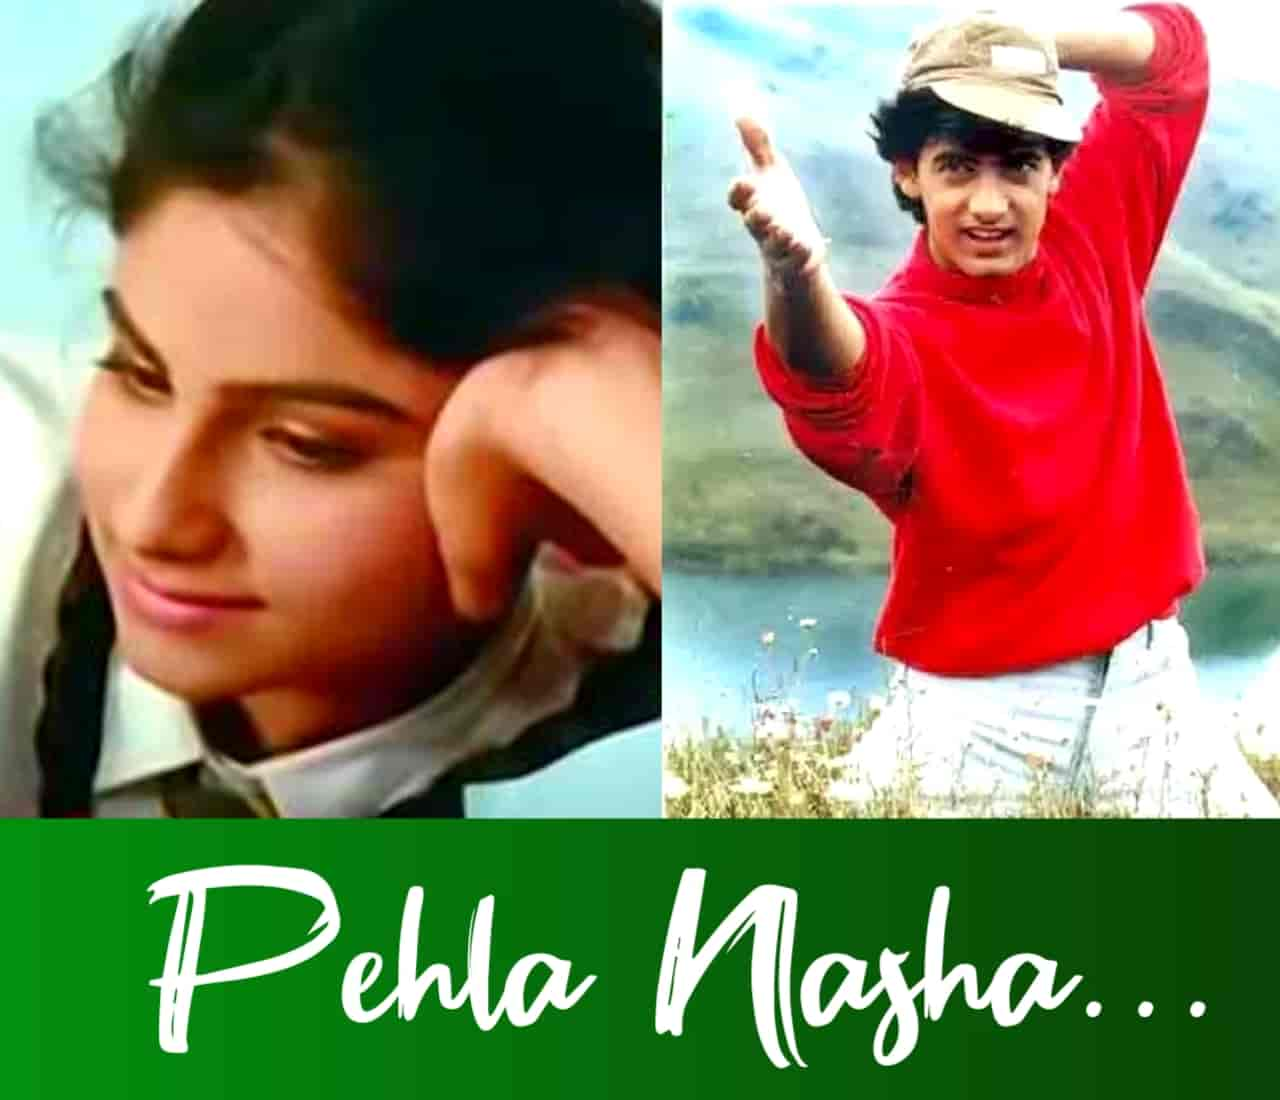 Pehla Nasha Hindi Love Song Lyrics, Sung By Udit Narayan and Sadhana Sargam.